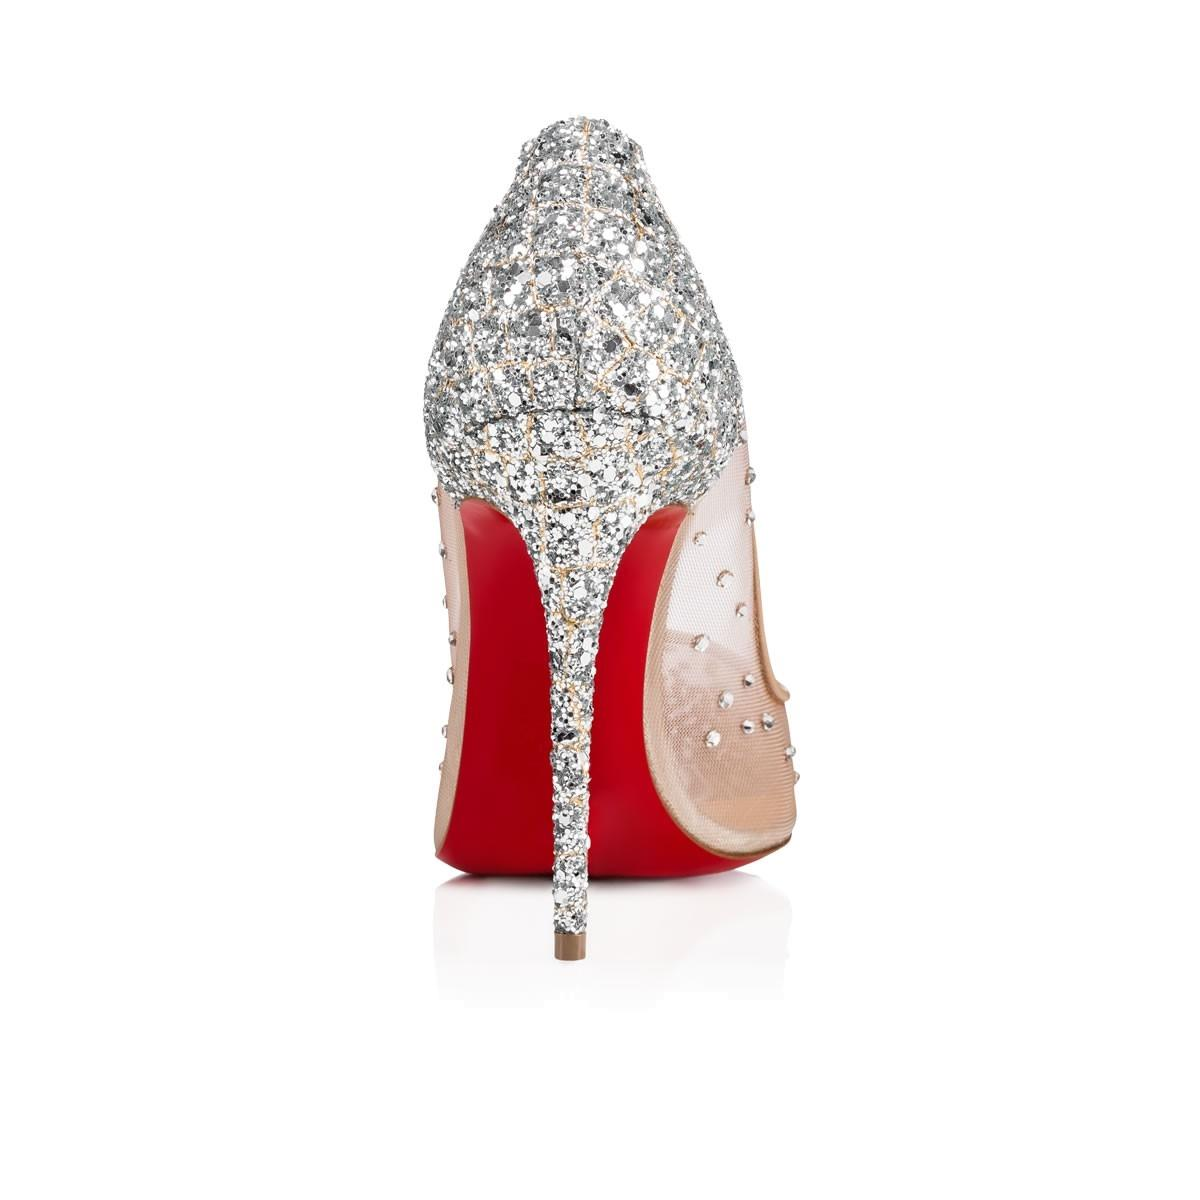 new products 4ec87 41c10 Christian Louboutin Silver Follies Strass 100 Glitter Nude ...